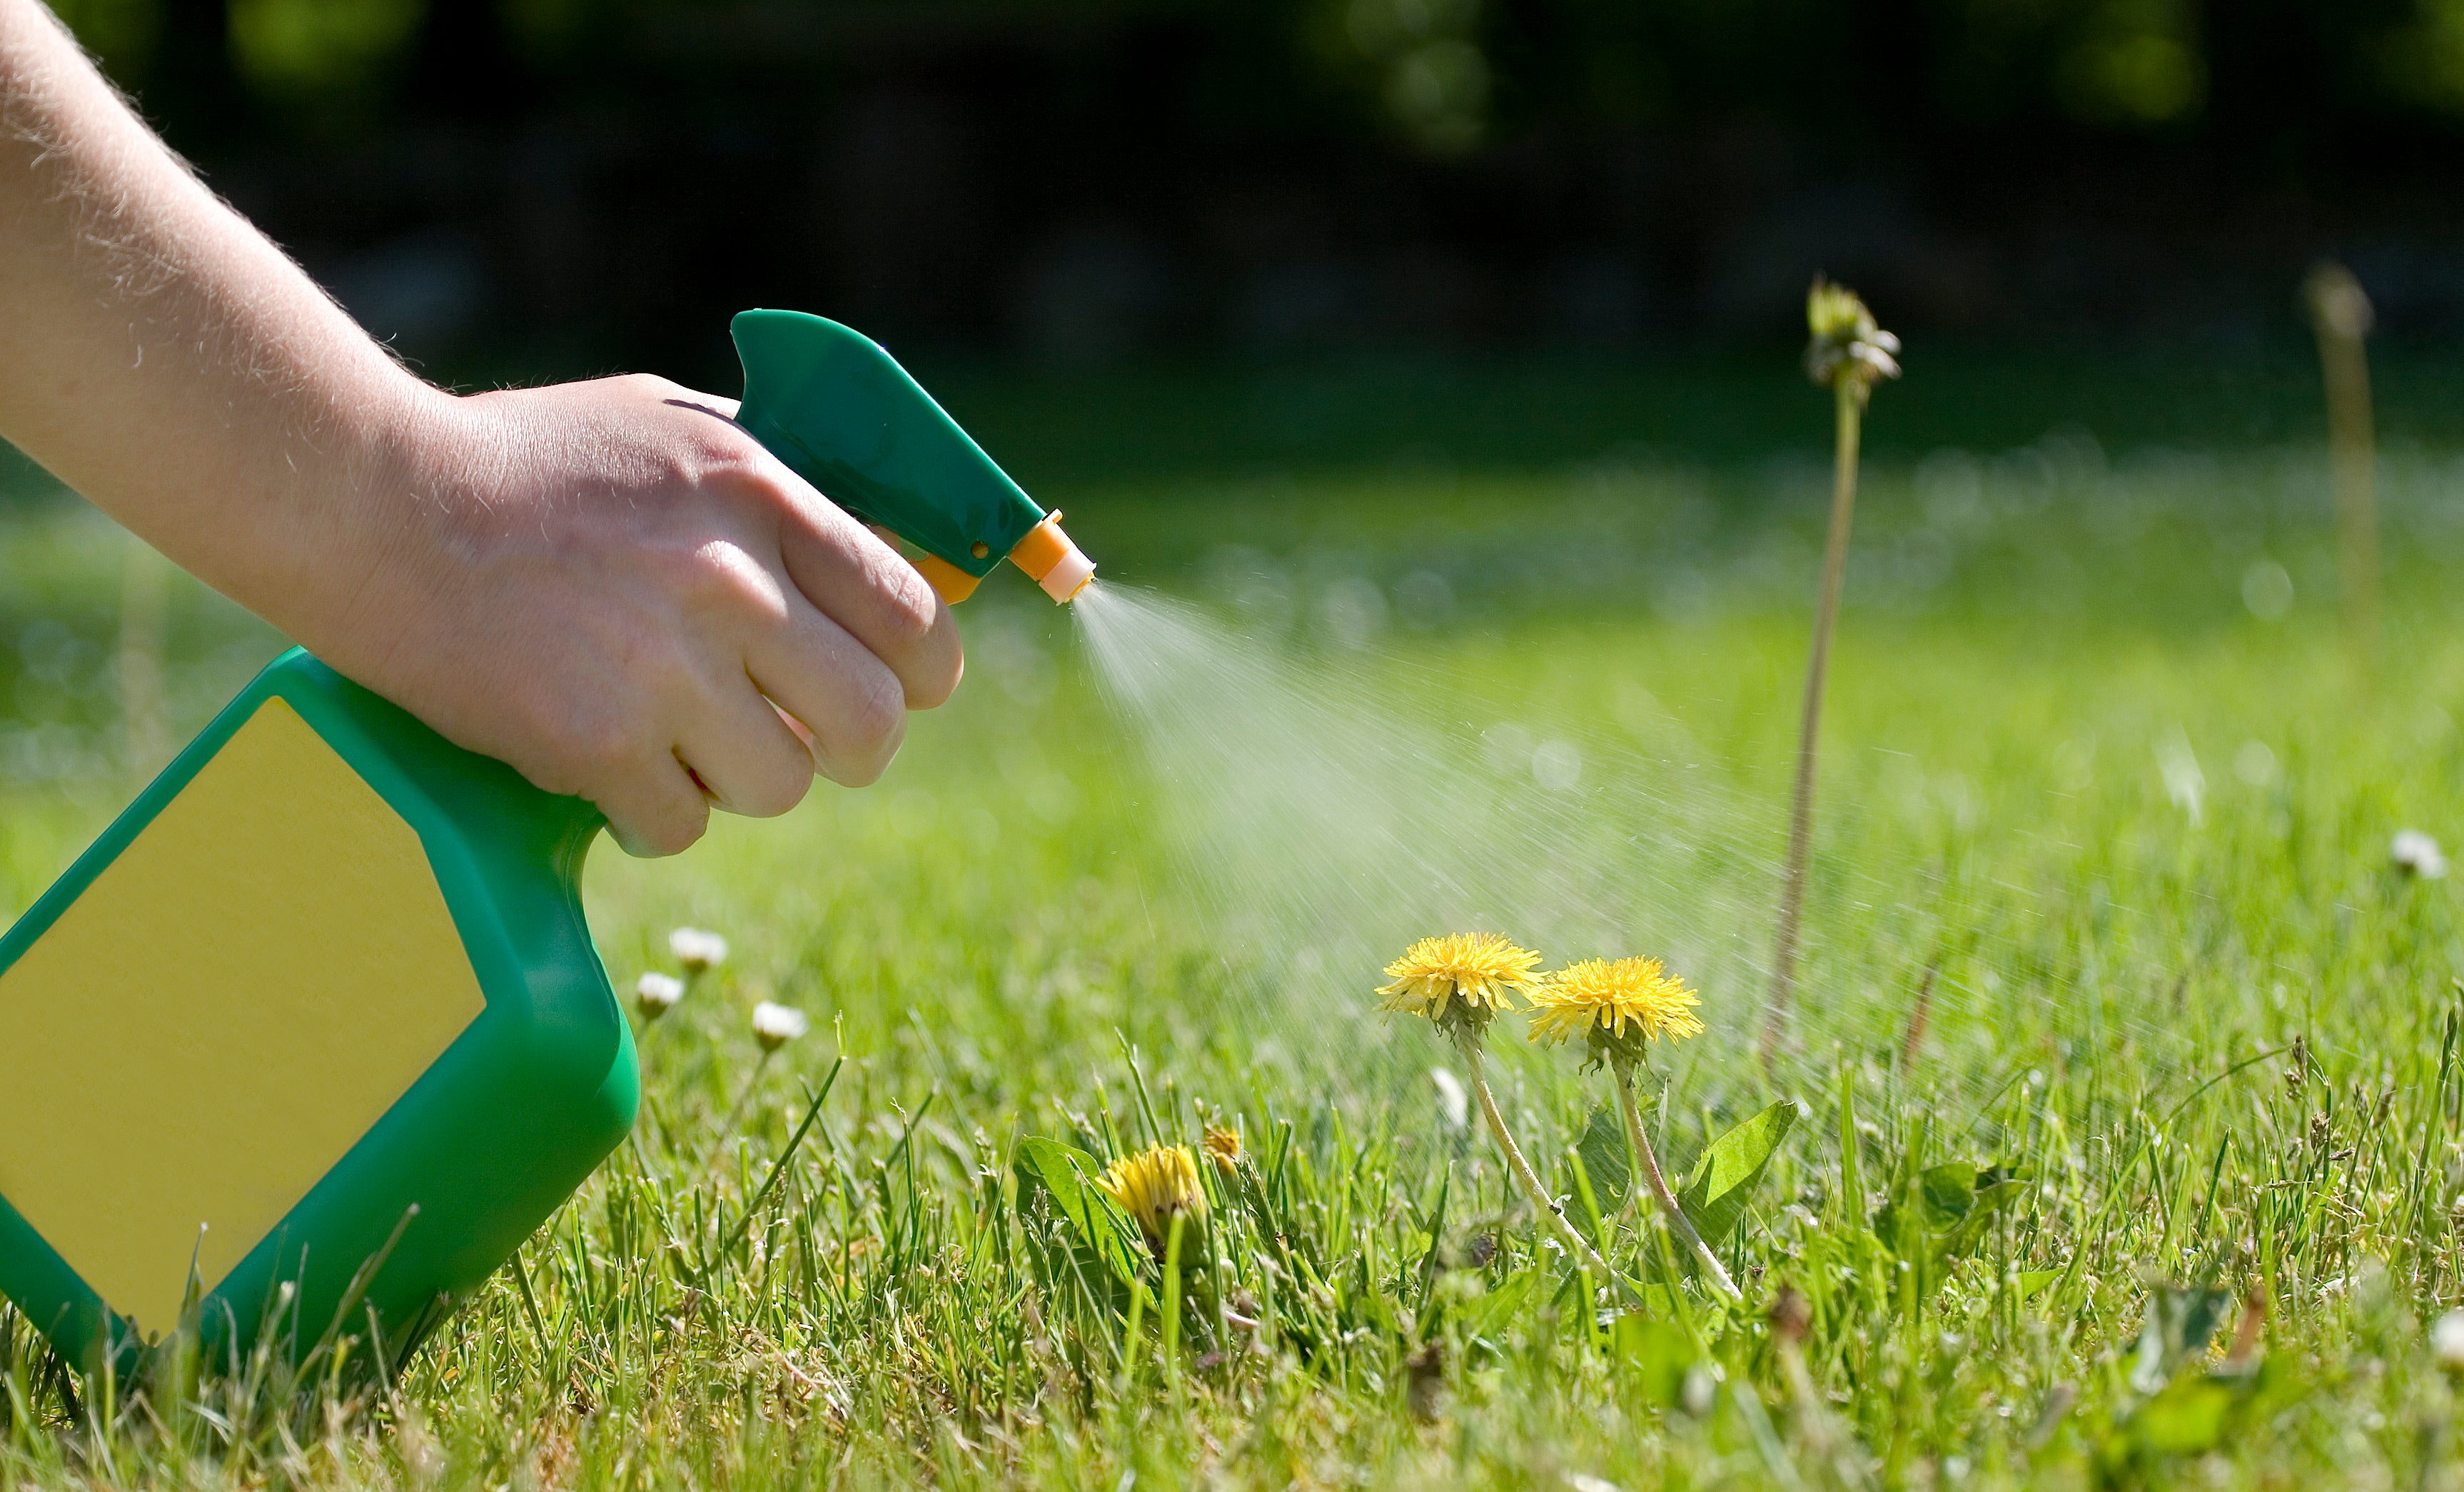 Weed Whacking Herbicide Proves Deadly